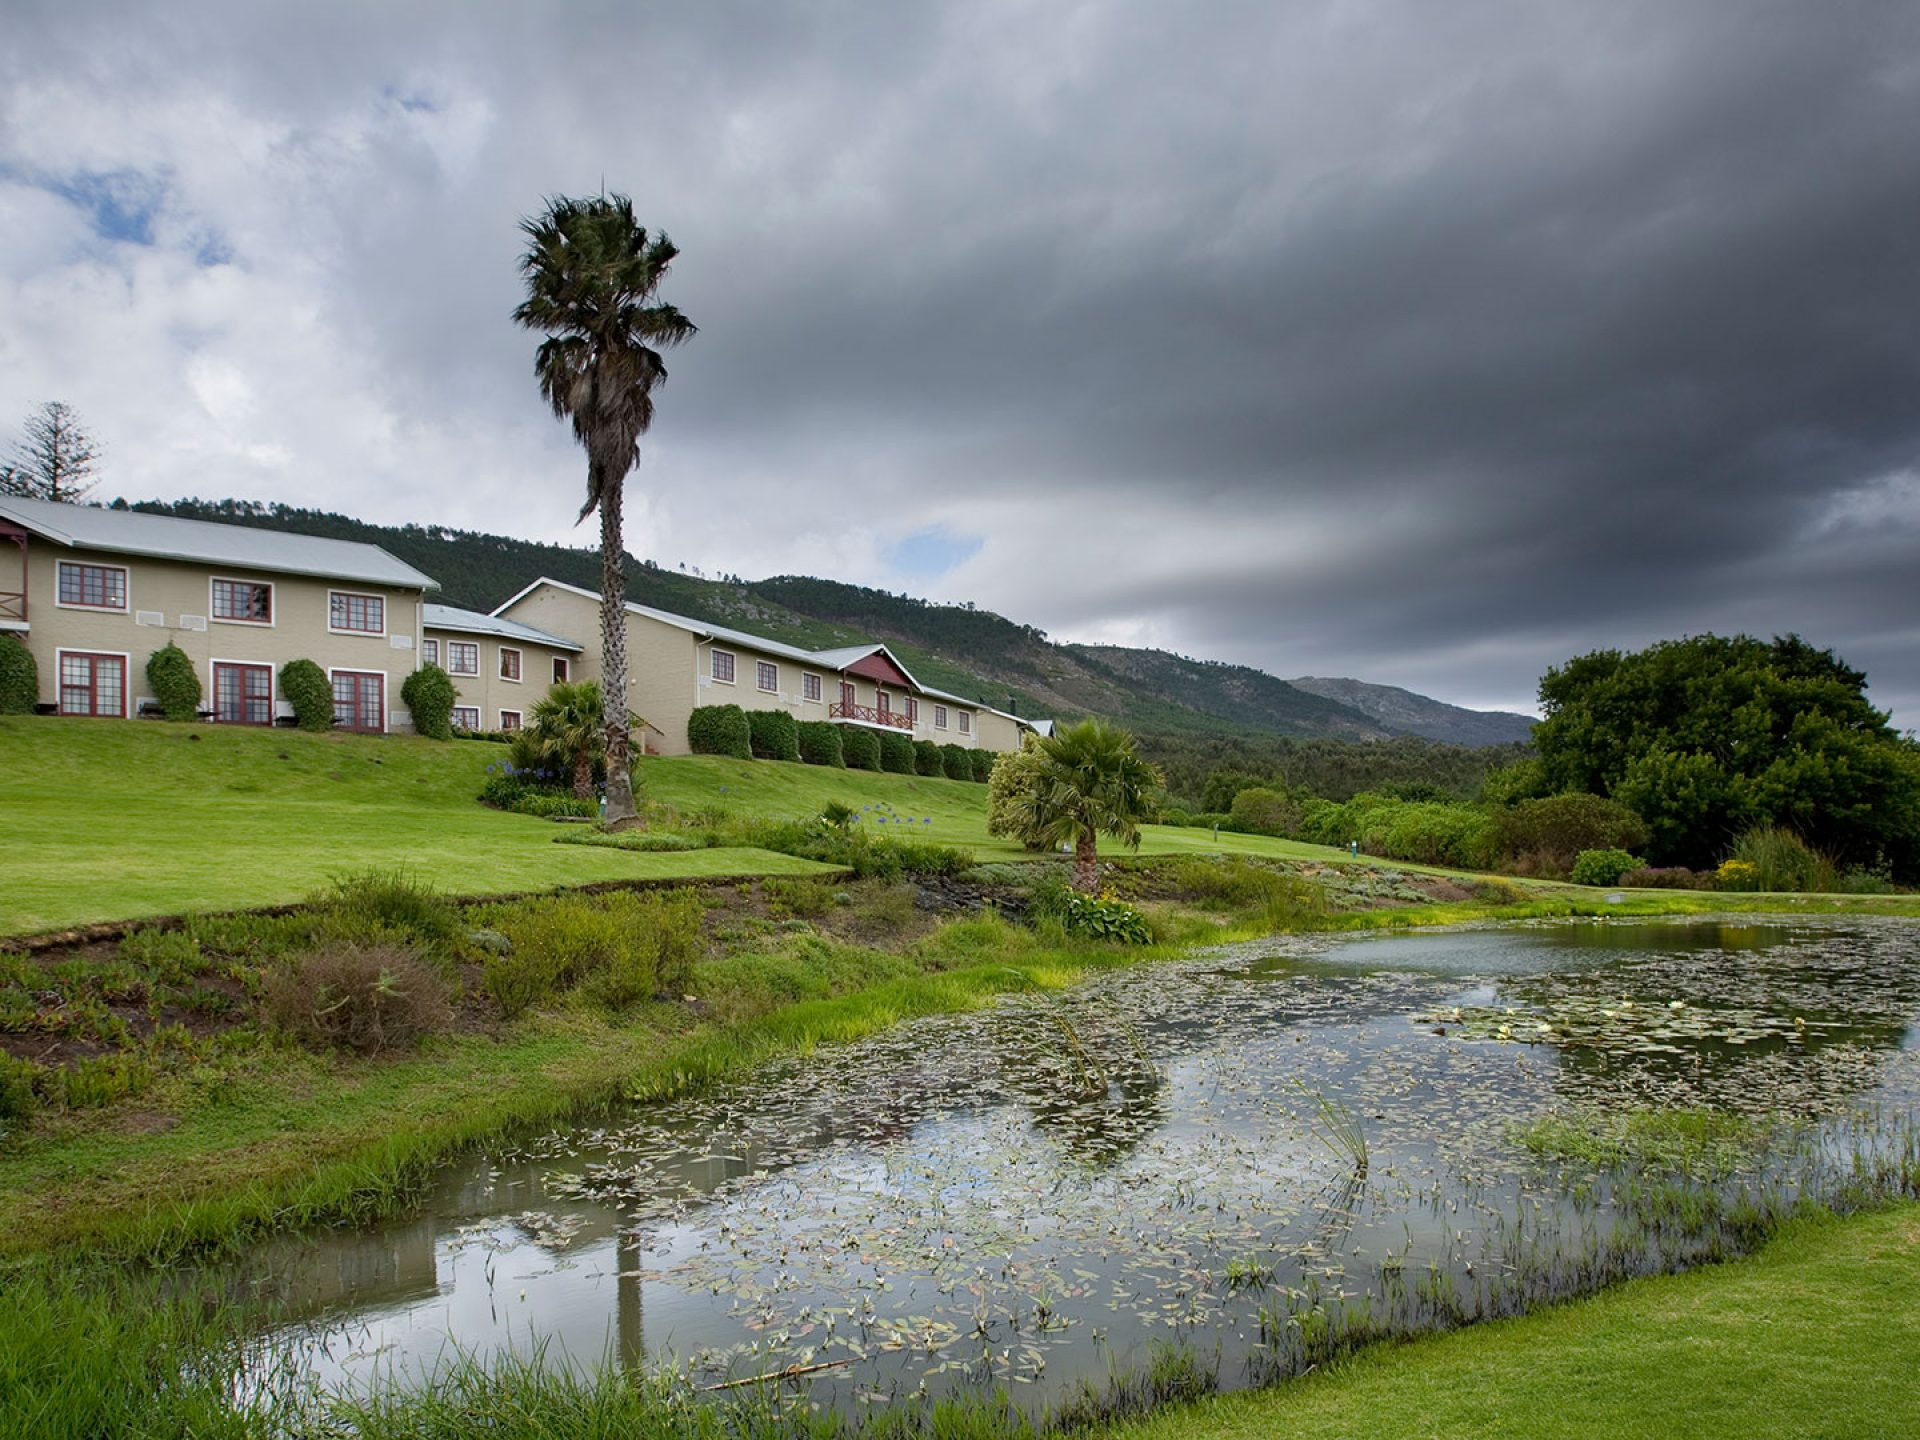 View of the Caledon hotel and gardens on a stormy day